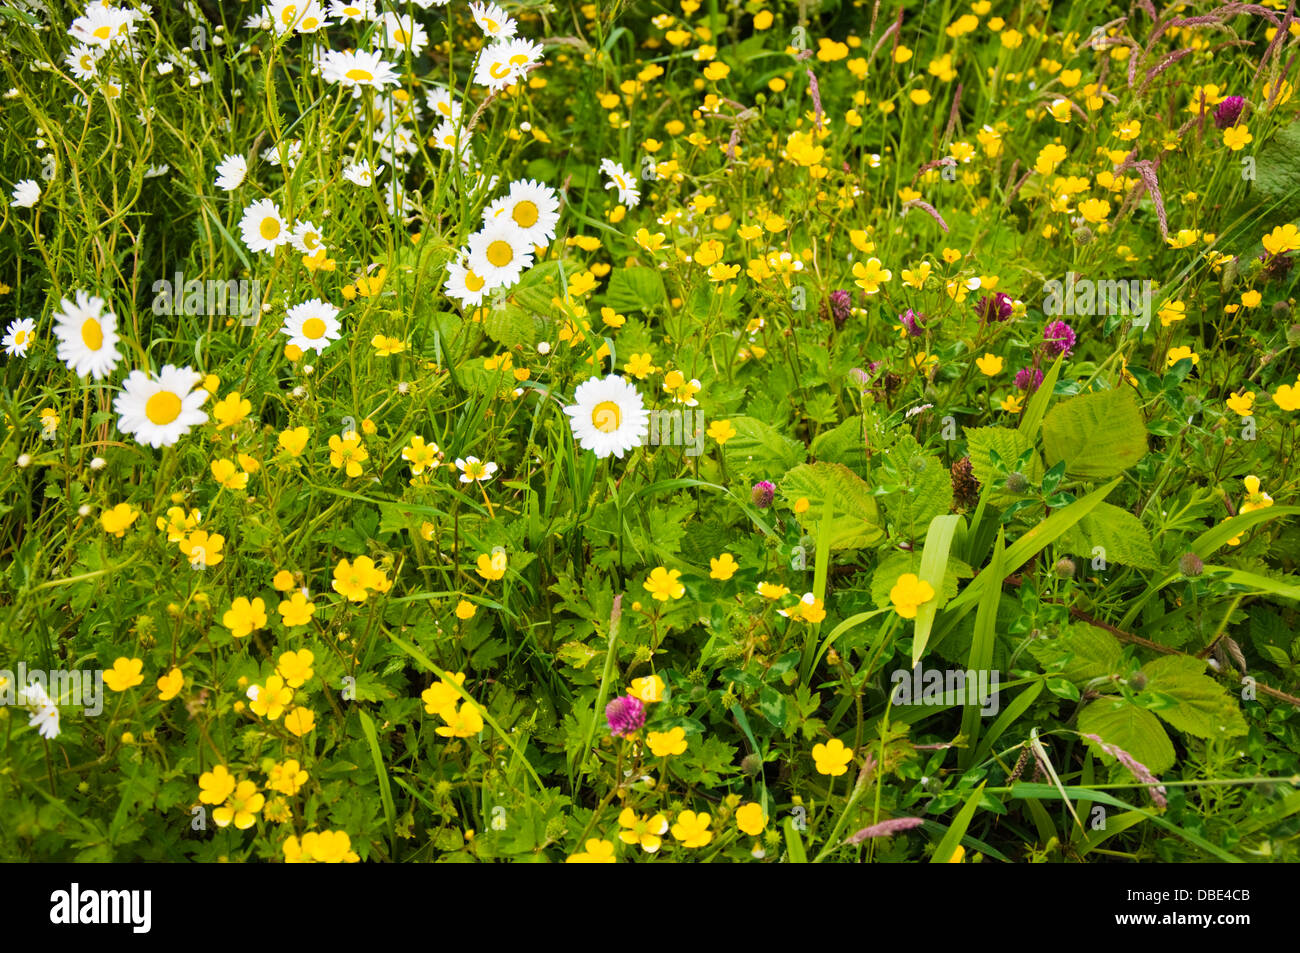 Wild Flowers In Ireland Stock Photos Wild Flowers In Ireland Stock